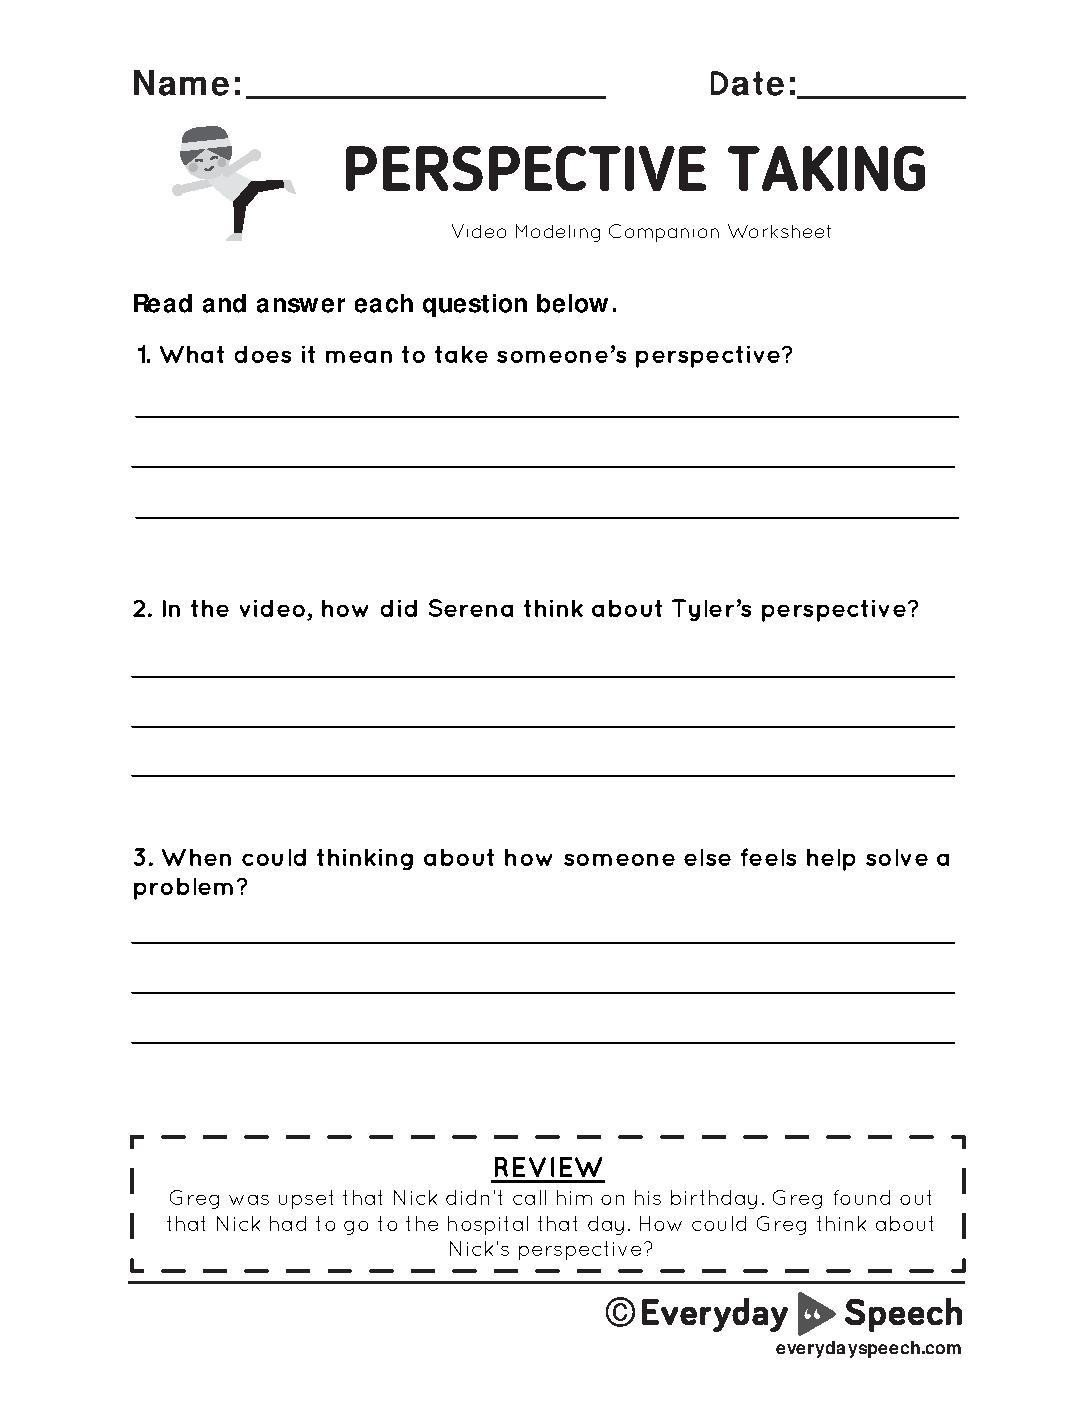 G22 Perspective Taking pdf